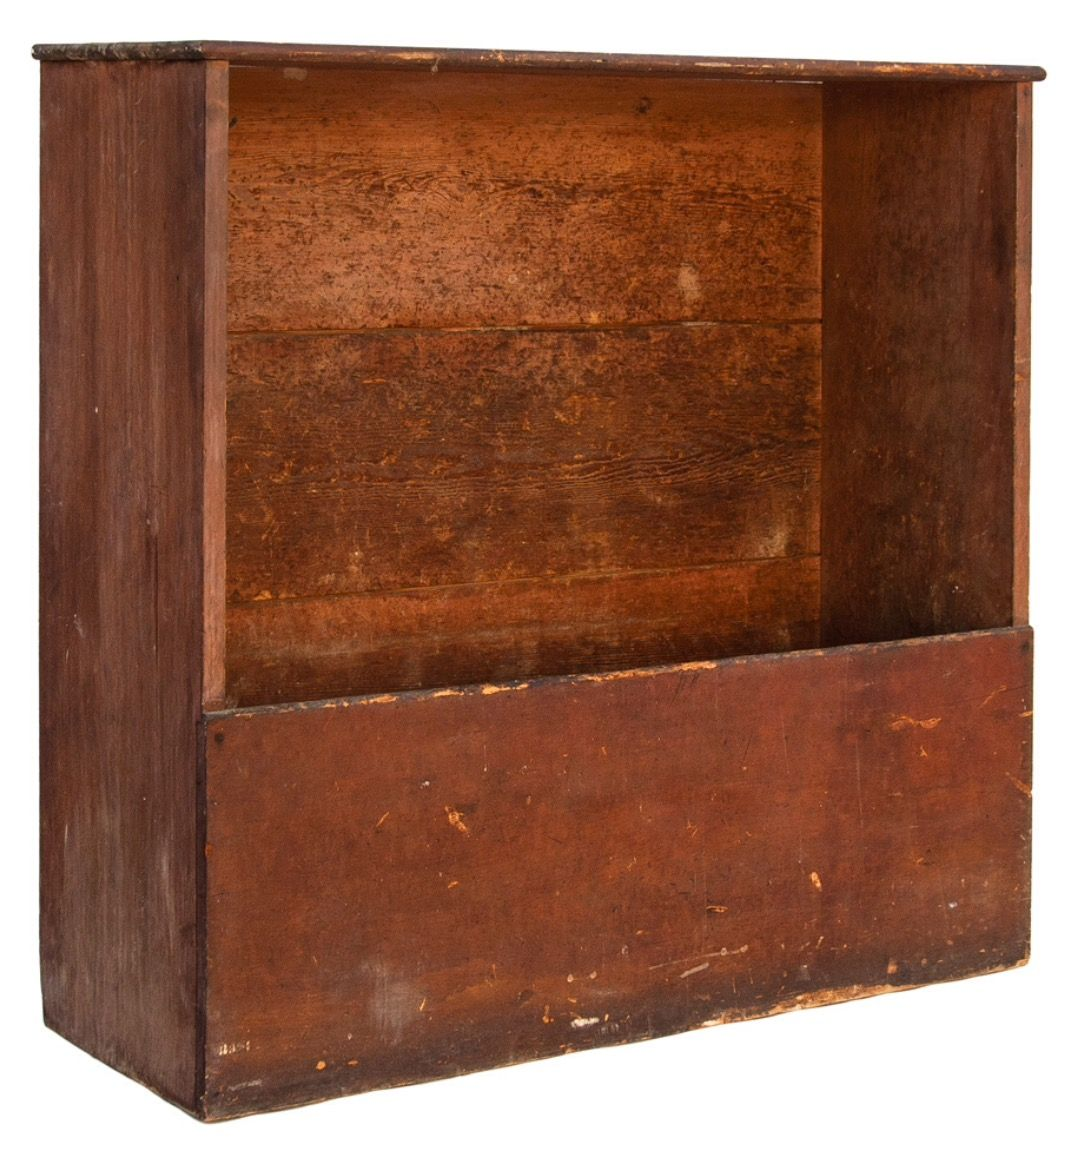 Willis Henry Shaker Auction 9/10/16 Lot 165. Estimate: $1,000 - 2,000. Realized: $600.  Desc:  Wood Box, Pine, original red/brown painted finish, single board construction, horizontal 3 board back, splined, iron hook on upper left interior, constructed with screws & forged nails, patina & wear appropriate to use, c. 1840, 52″ h, 55″ w, 18 1/2″ d, (ex. Brecht family collection).